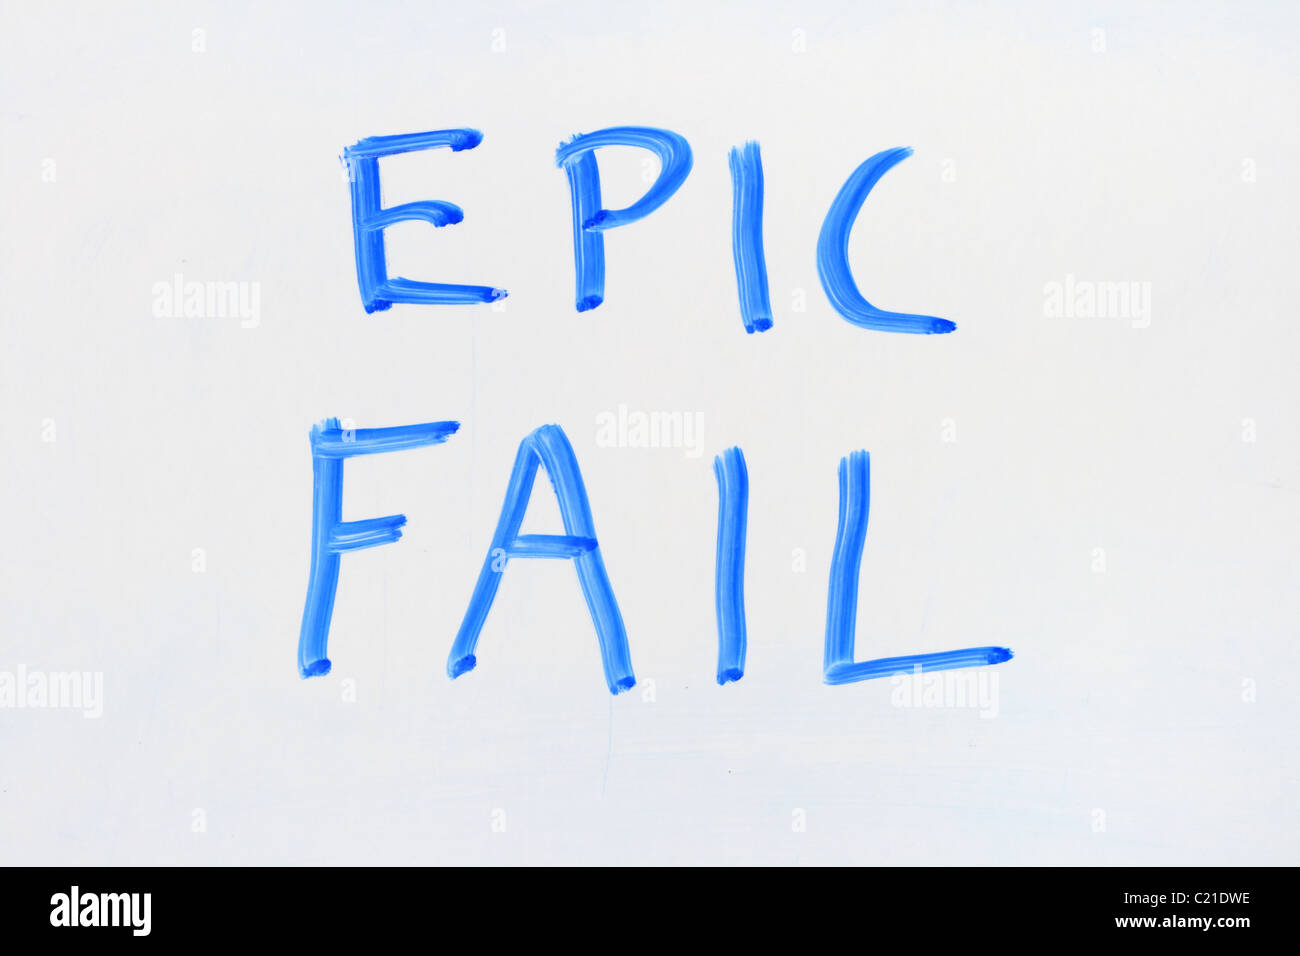 epic fail written in blue marker on a dry erase white board - Stock Image